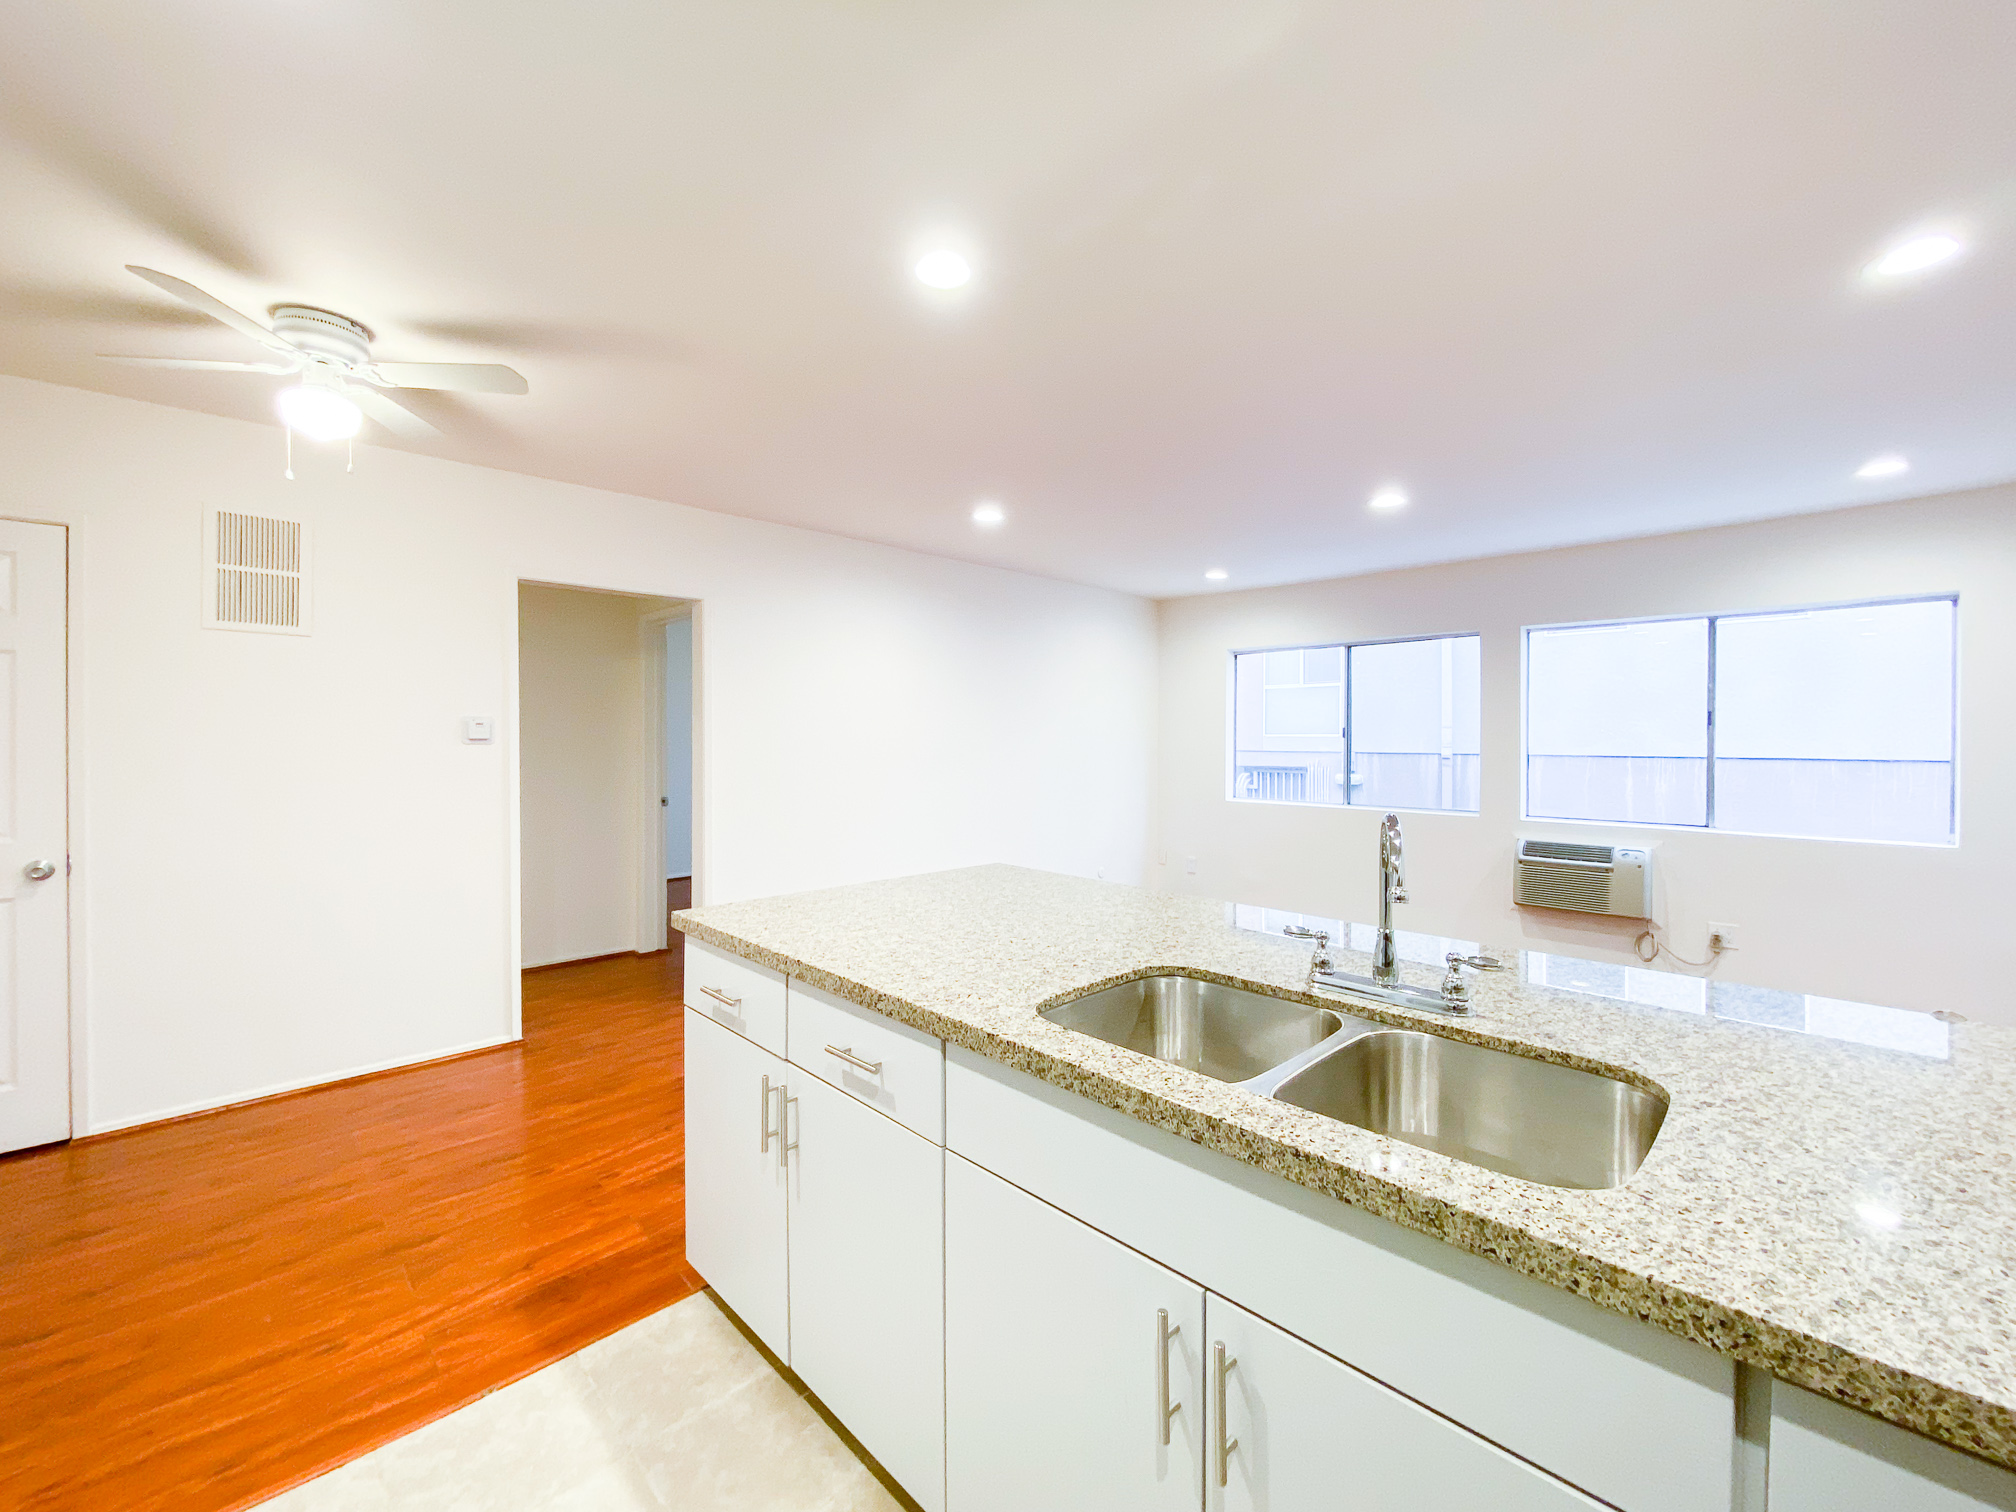 LIGHT & BRIGHT! SUPER SPACIOUS, 1 BEDROOM - UPDATED AND STYLISH KITCHEN -DW - AC- PARKING- CLOSE TO DTLA AND USC!